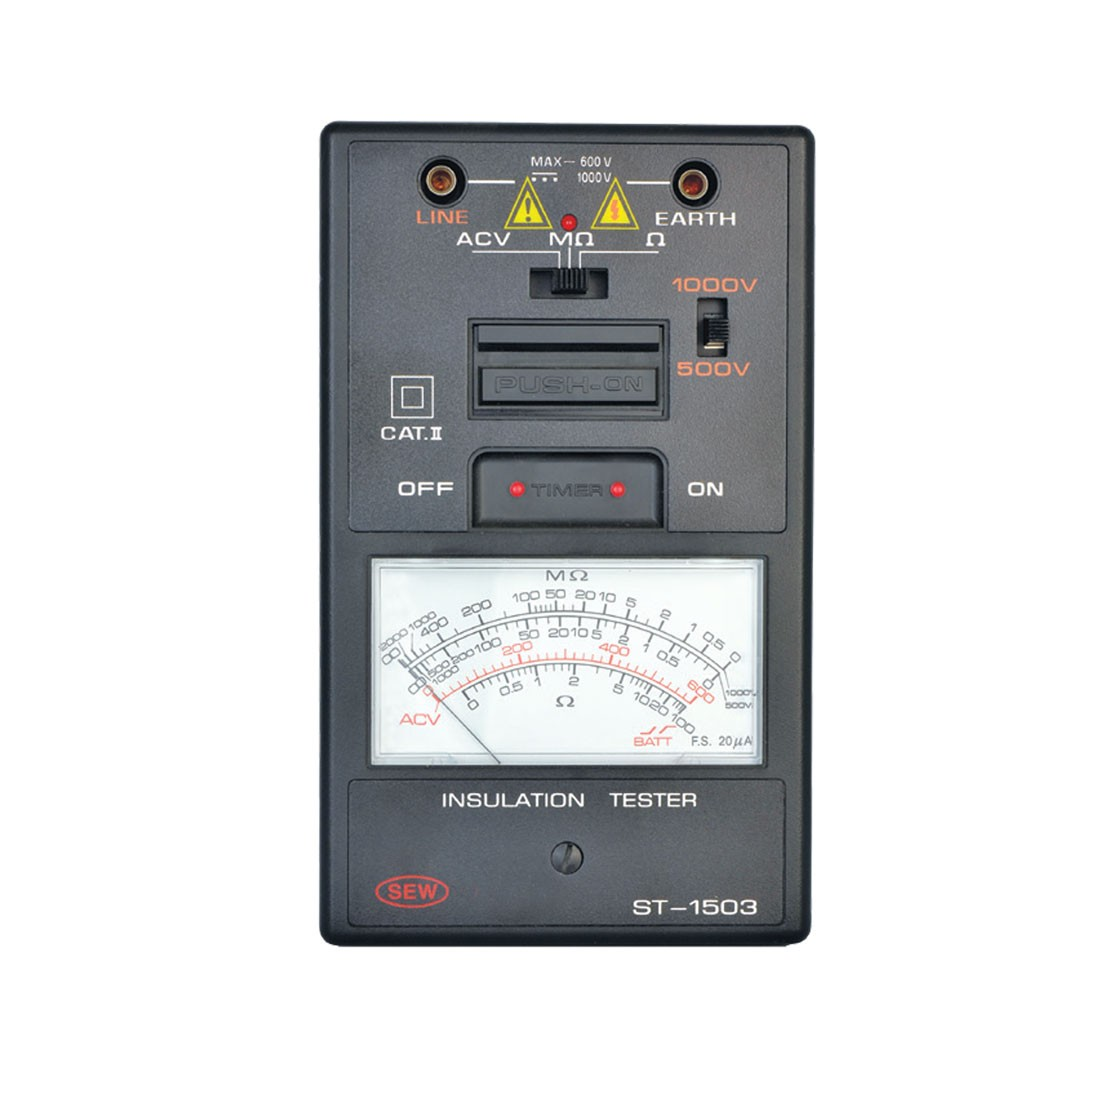 ST-1503 Analogue (Up to 1kV) Insulation Tester